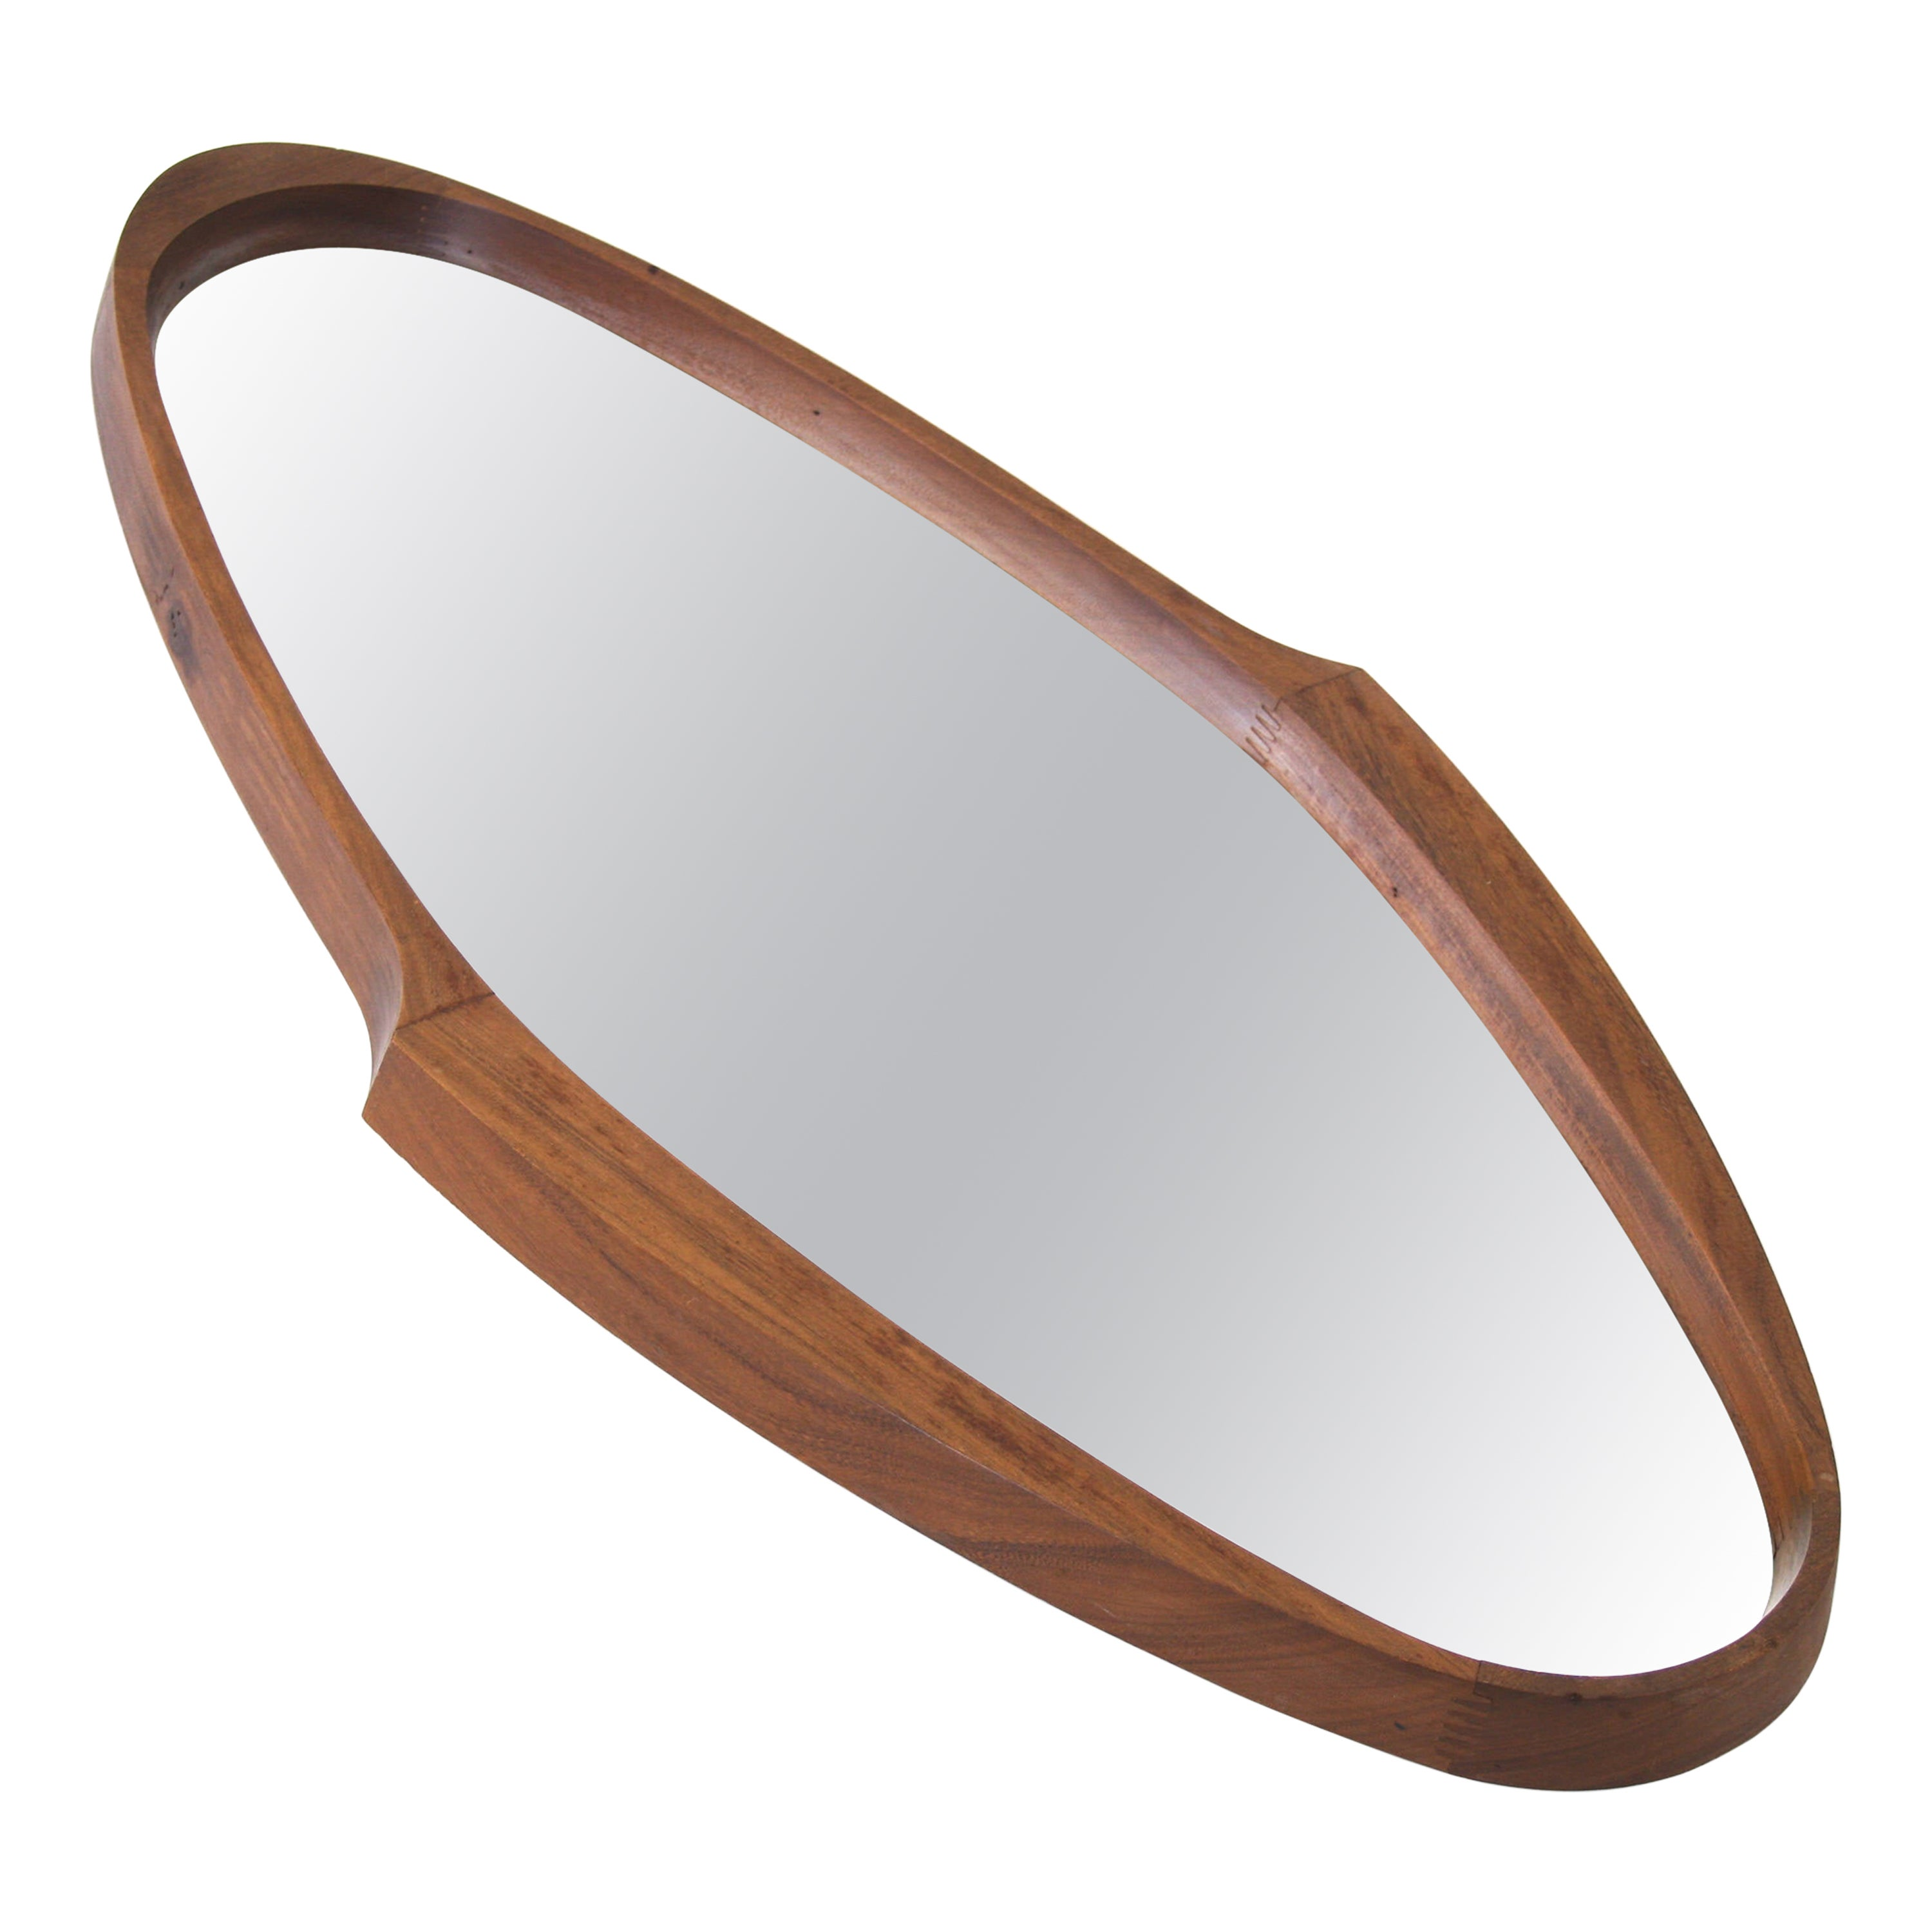 Mirror with Oval Wooden Frame of Mahogany Manufactured in Italy, 1950s